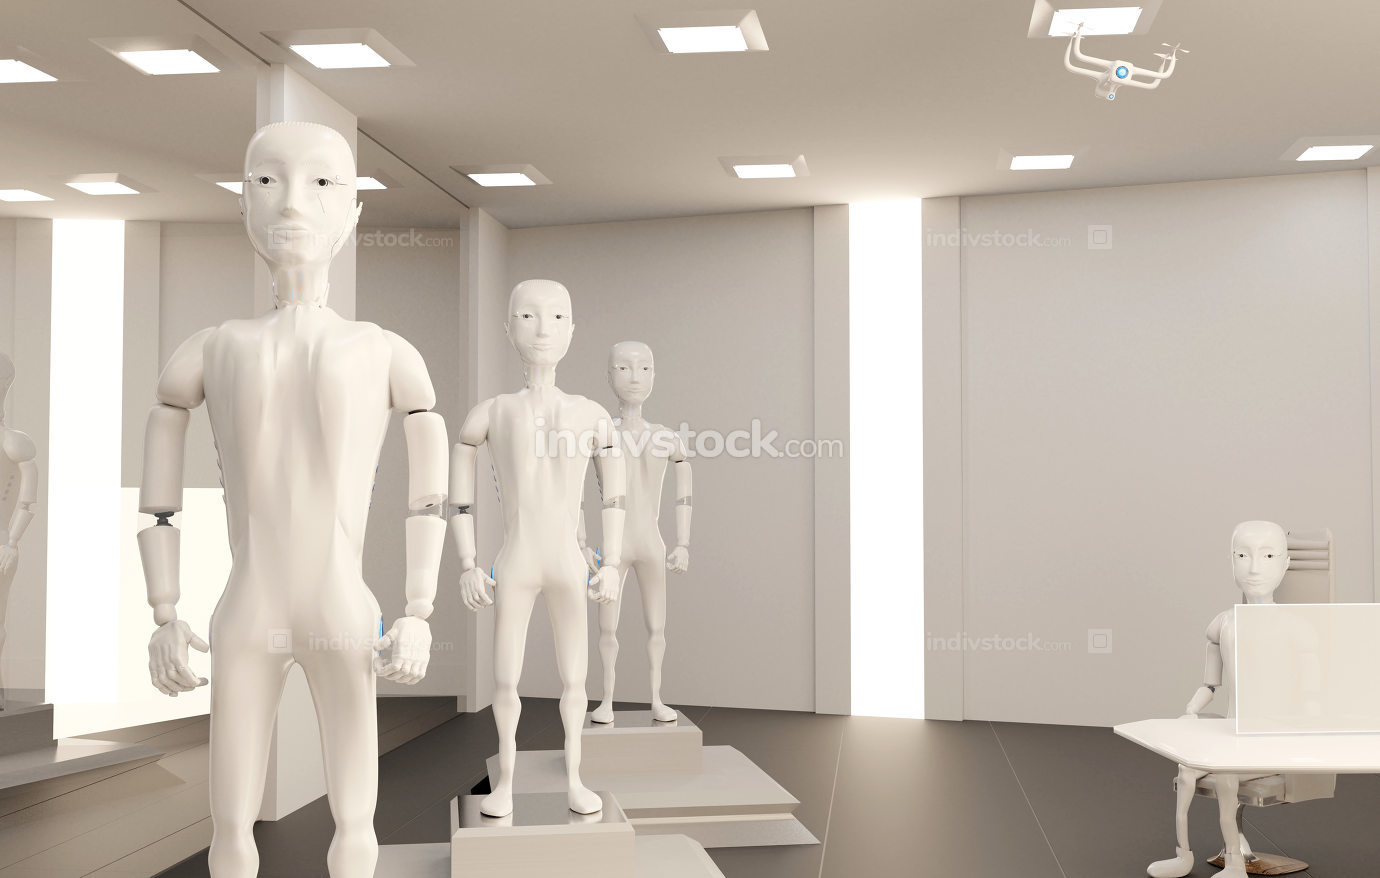 free download: buy a robot in the robot shop 3d-illustration